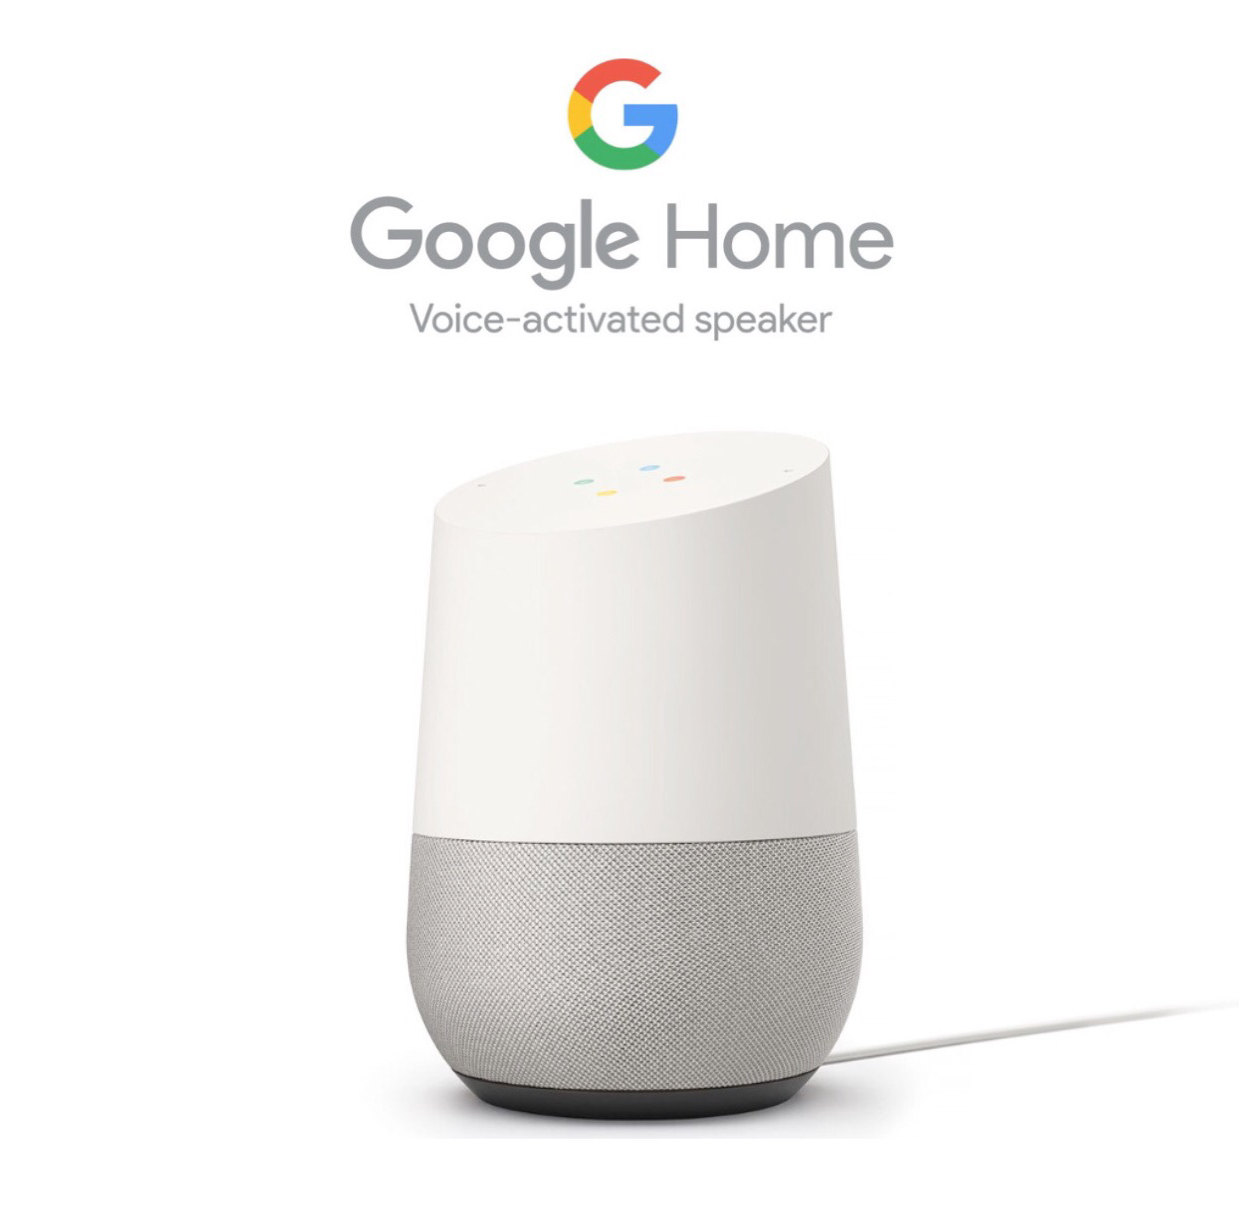 Google Home - Smart Speaker with Google Assistant